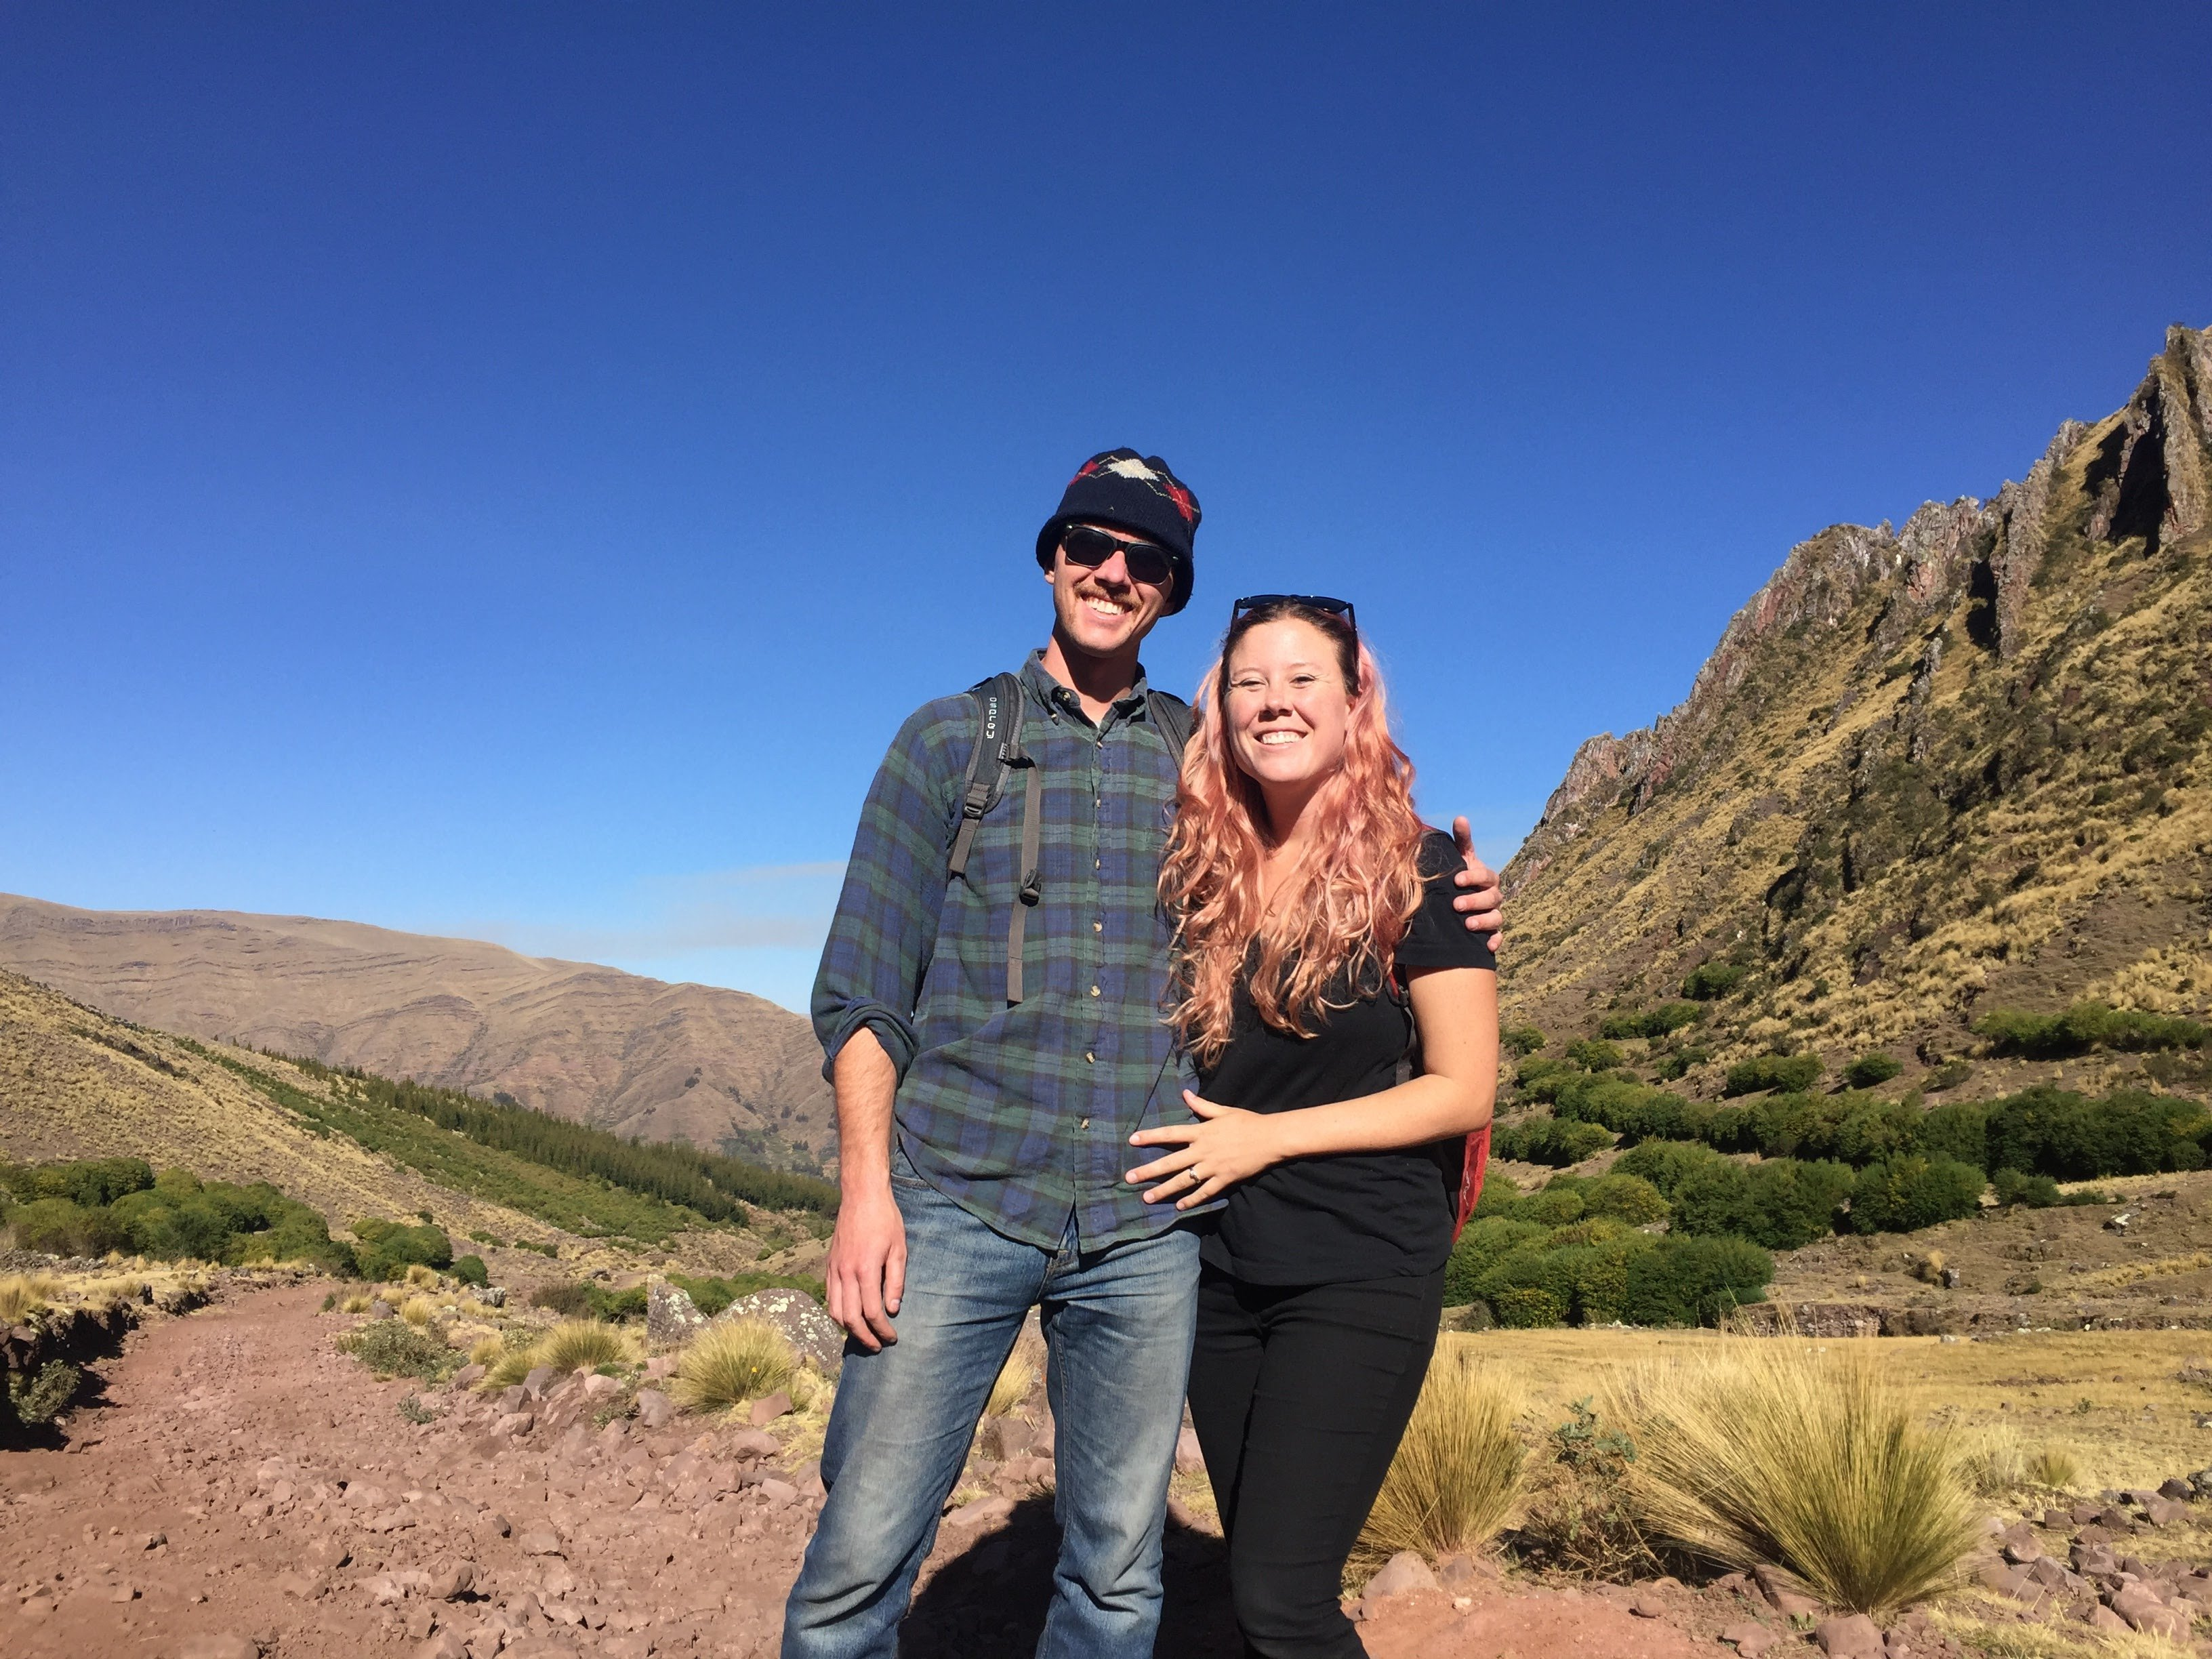 Dan and Di, travel bloggers and founders of Slight North